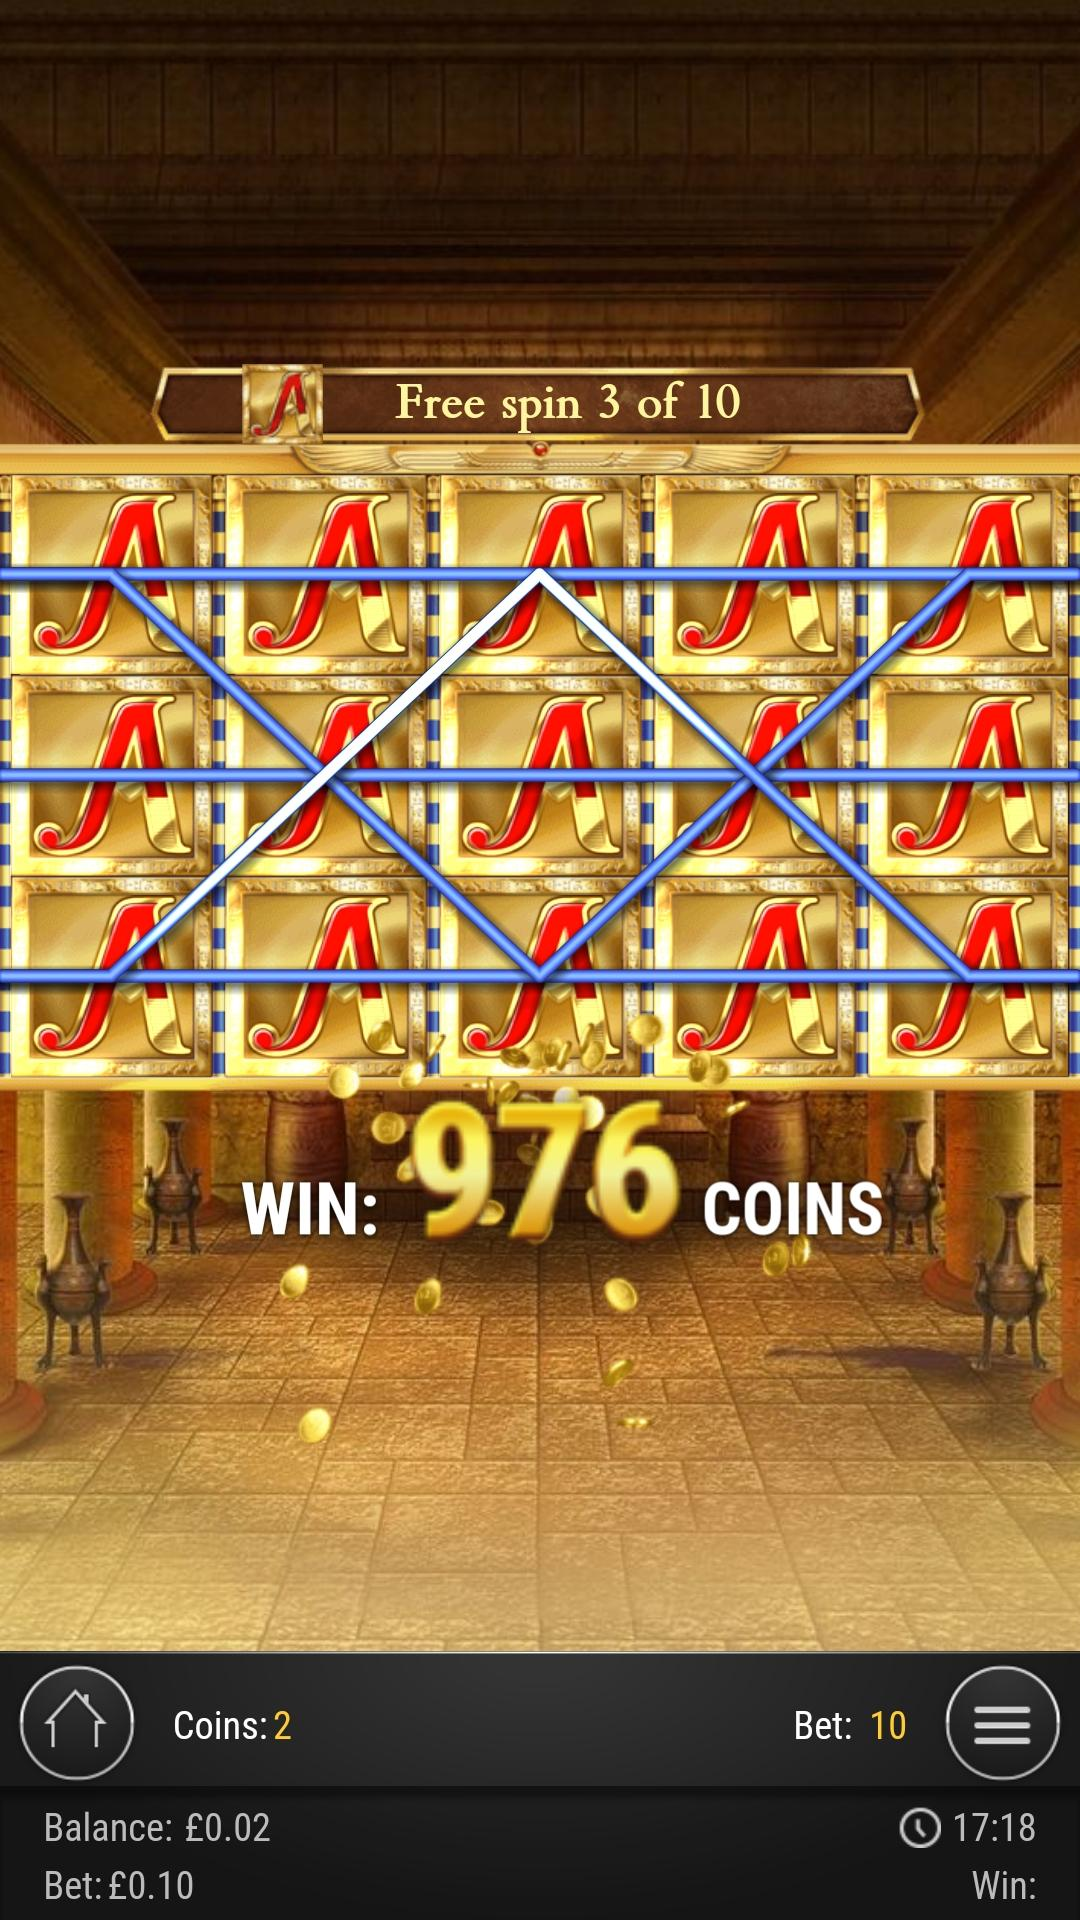 That last spin luck   The Bandit's Slot Channel Website